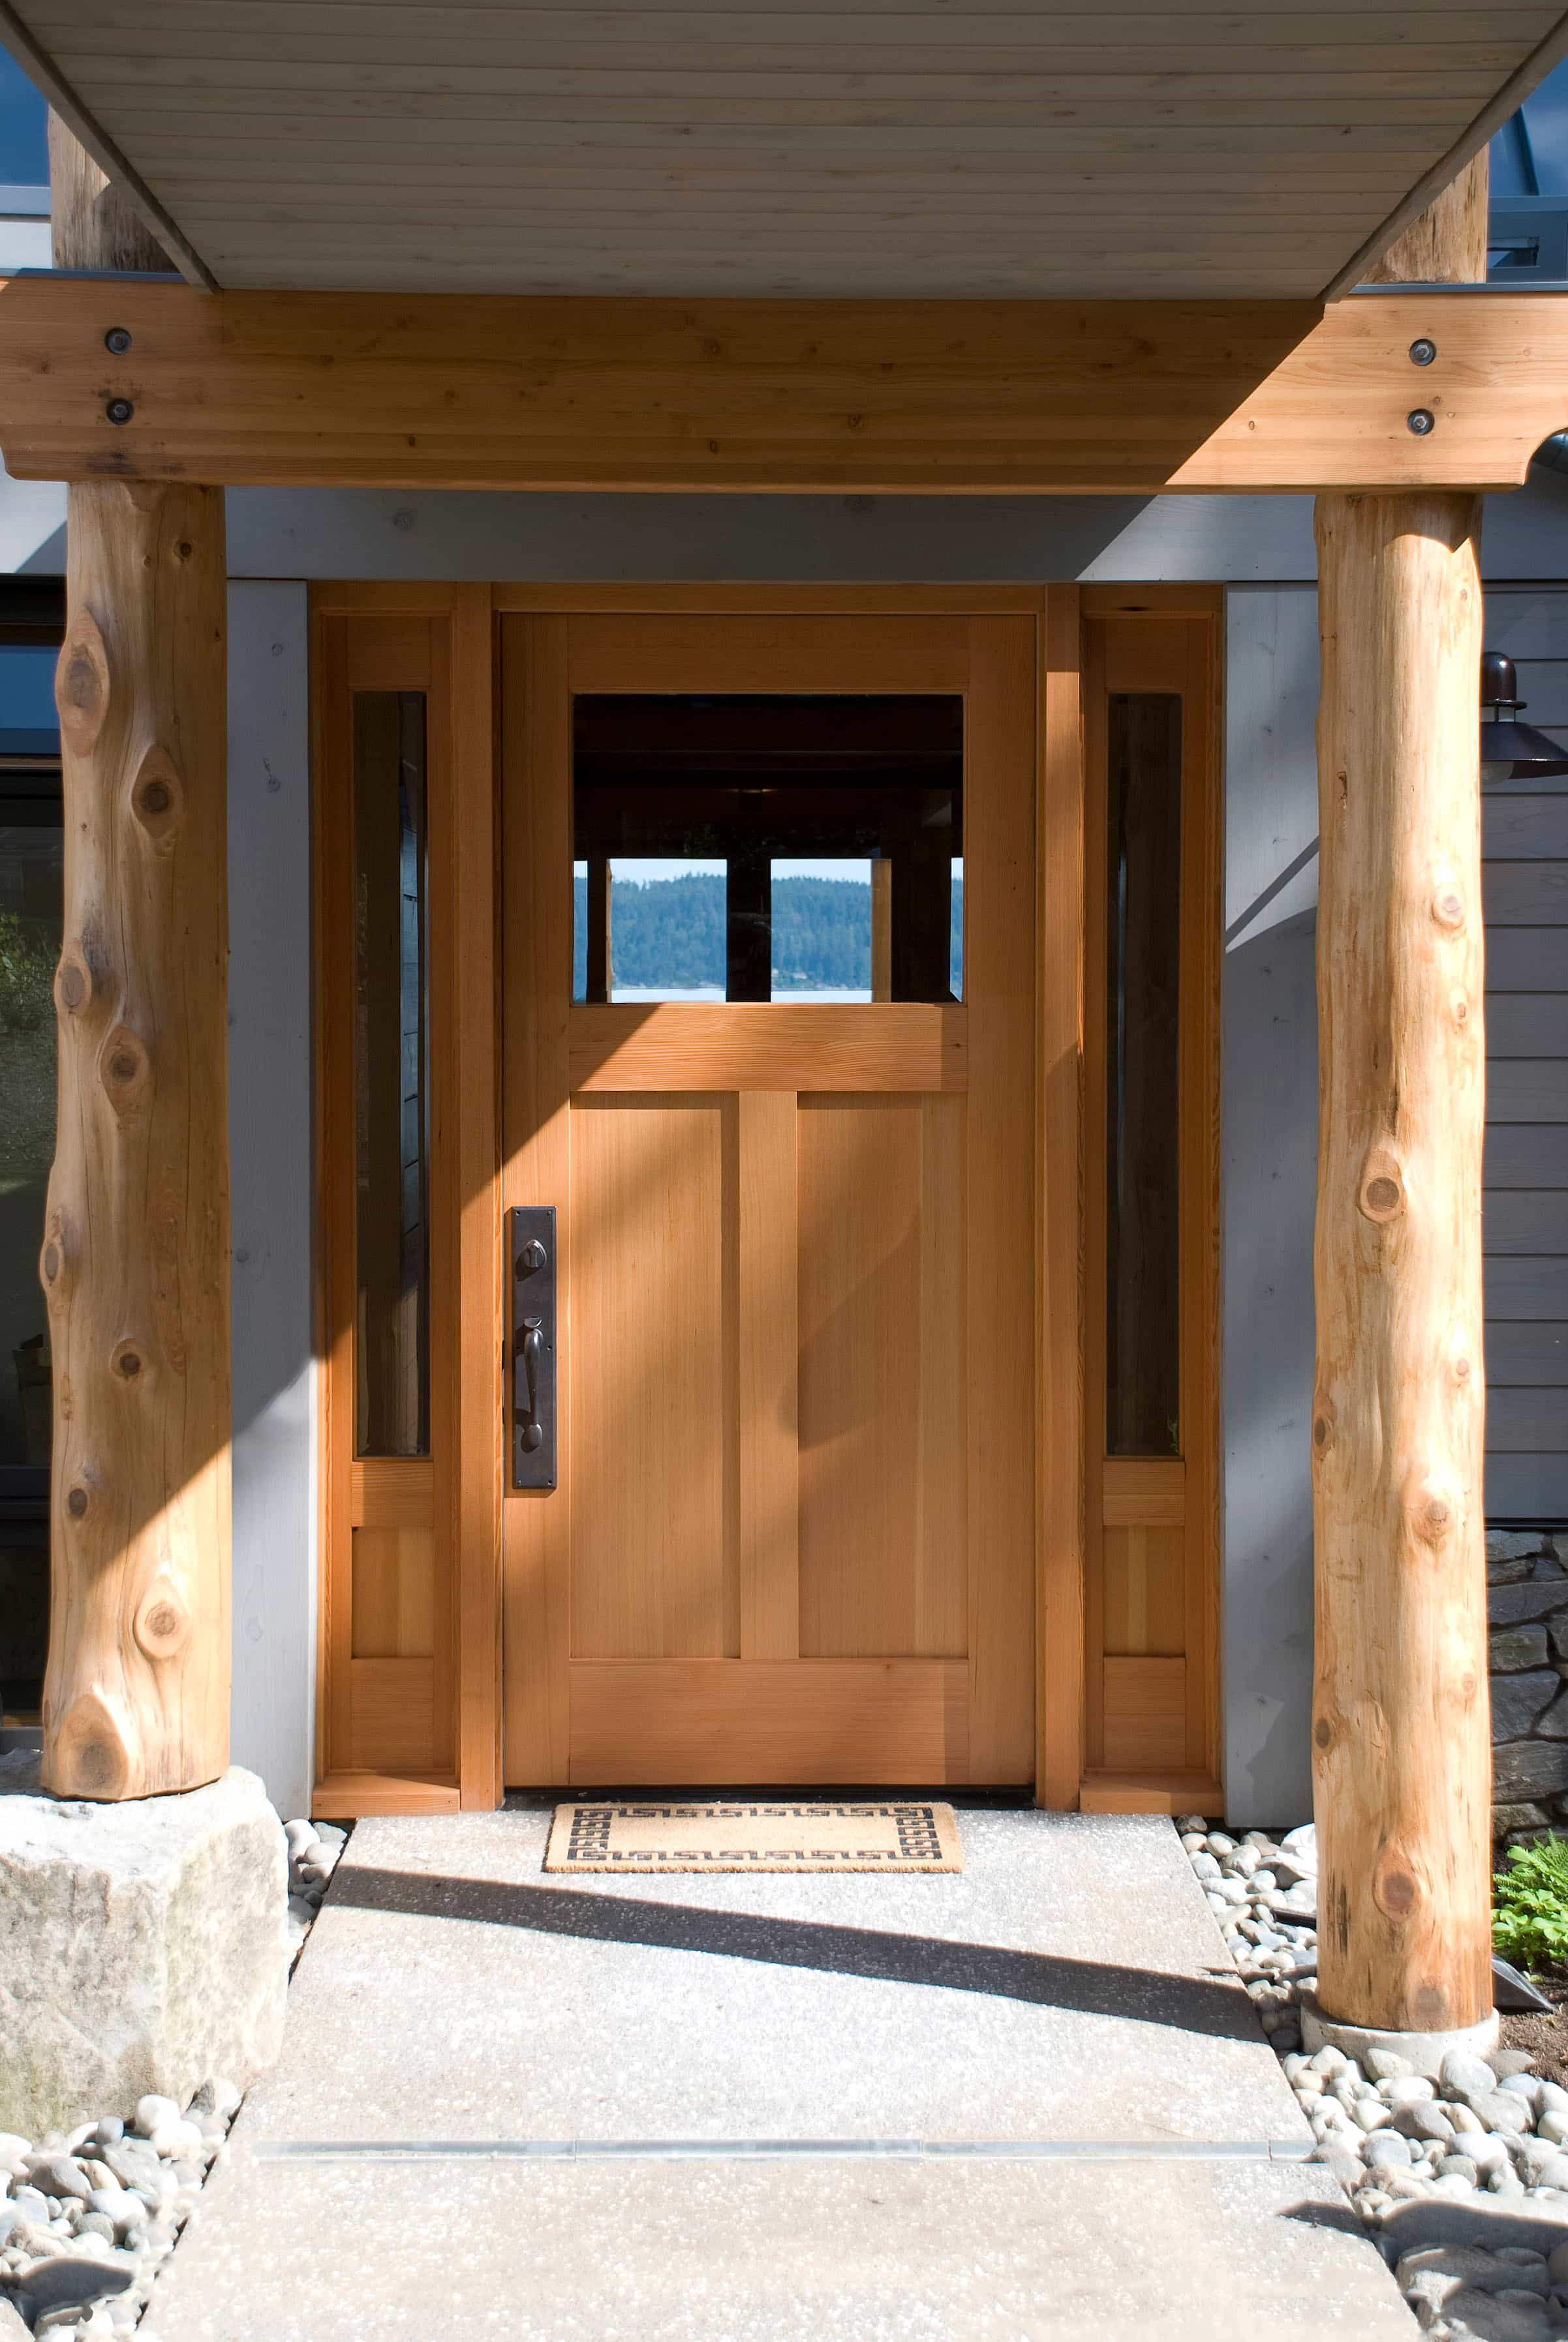 15. Custom Entry Door for a Beach House